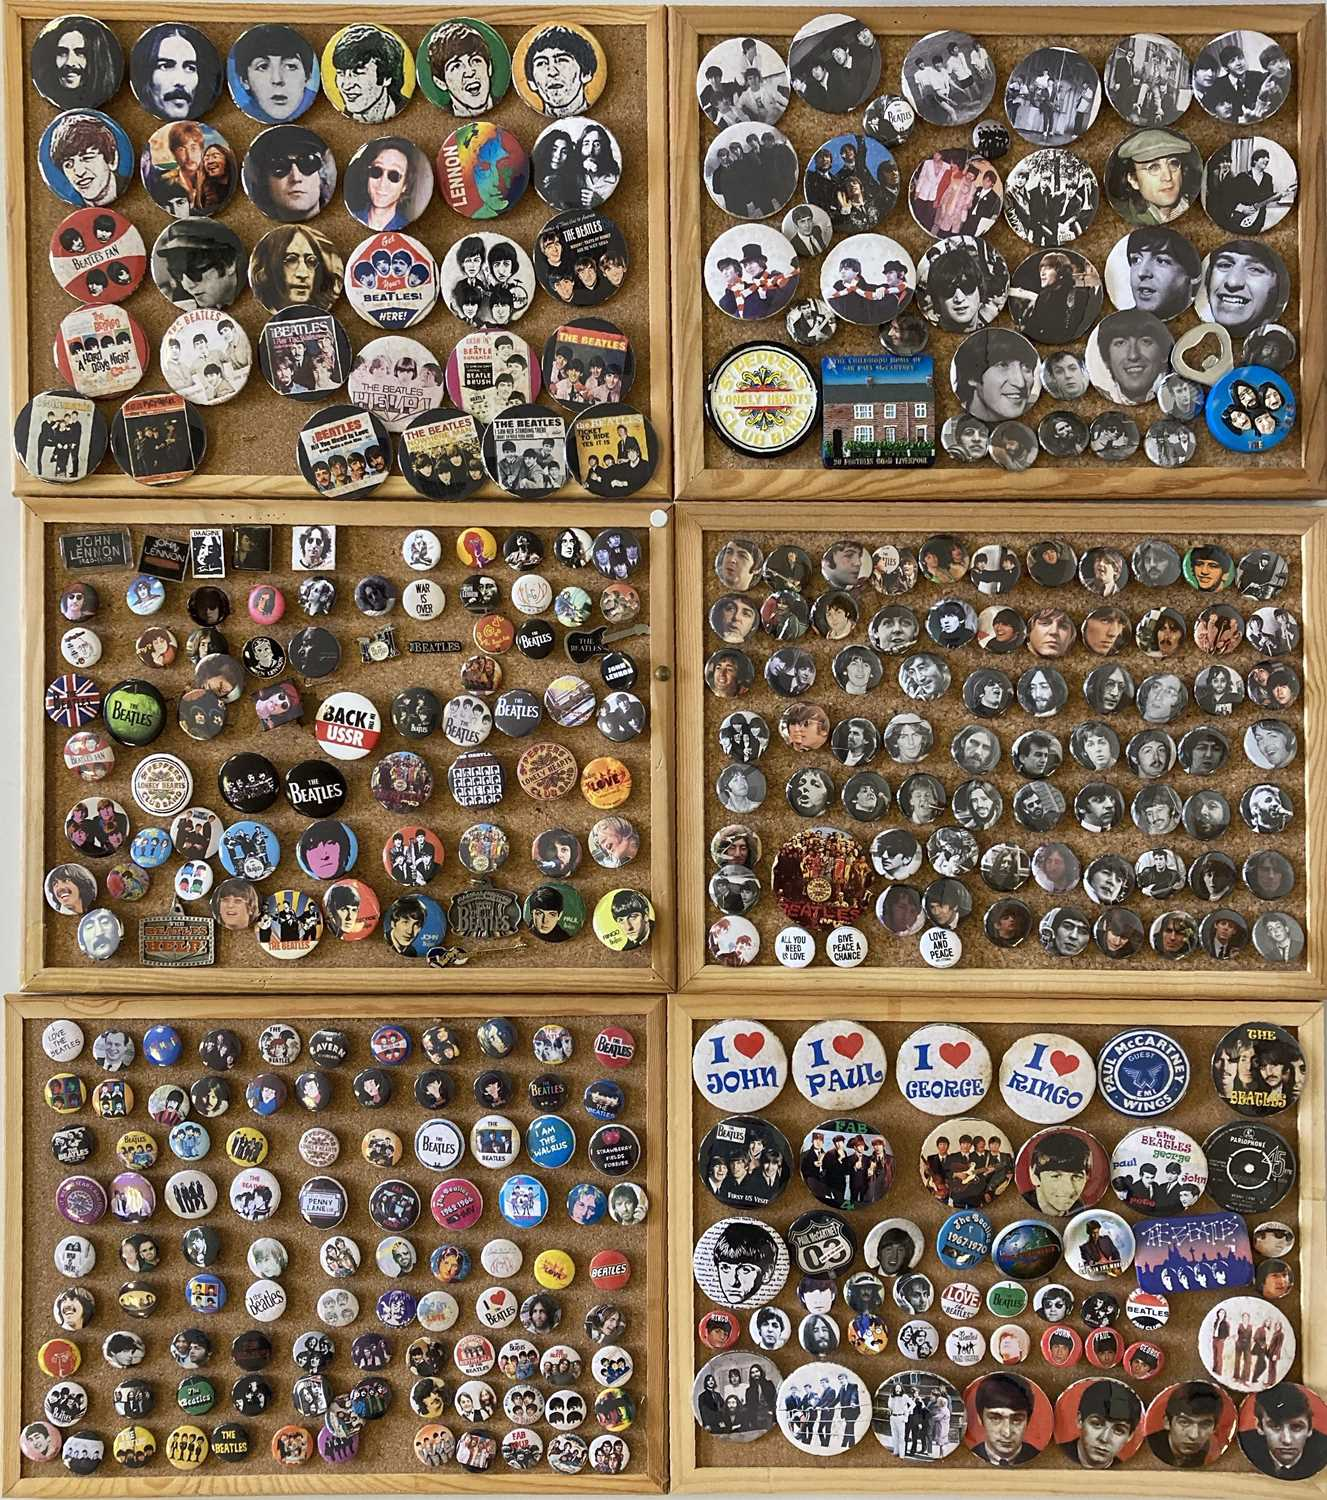 BEATLES BADGE COLLECTION. - Image 2 of 4